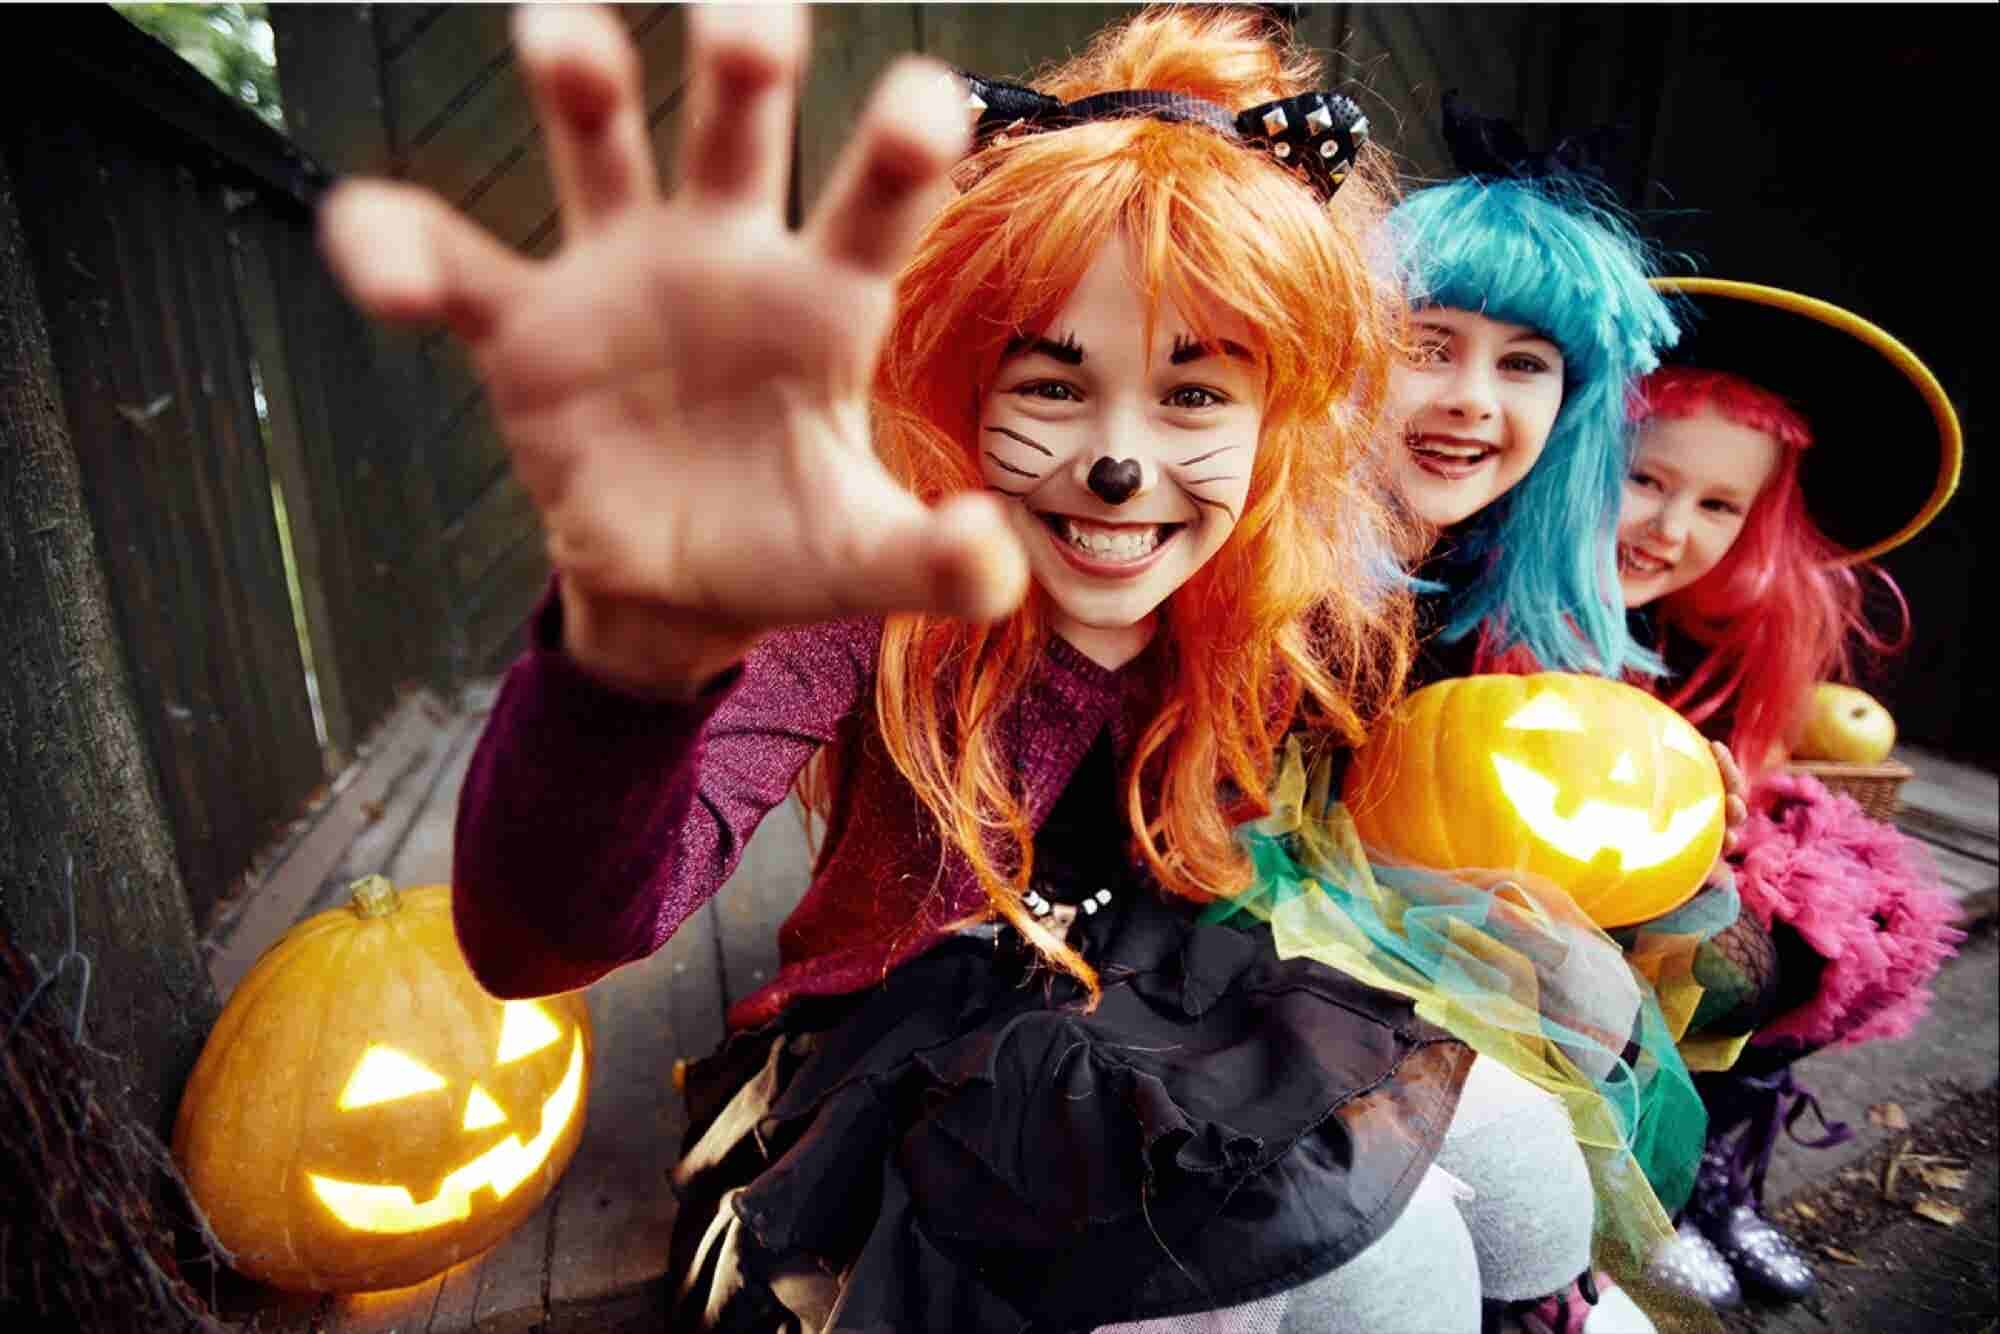 Is Your Corporate Culture a Halloween Nightmare?